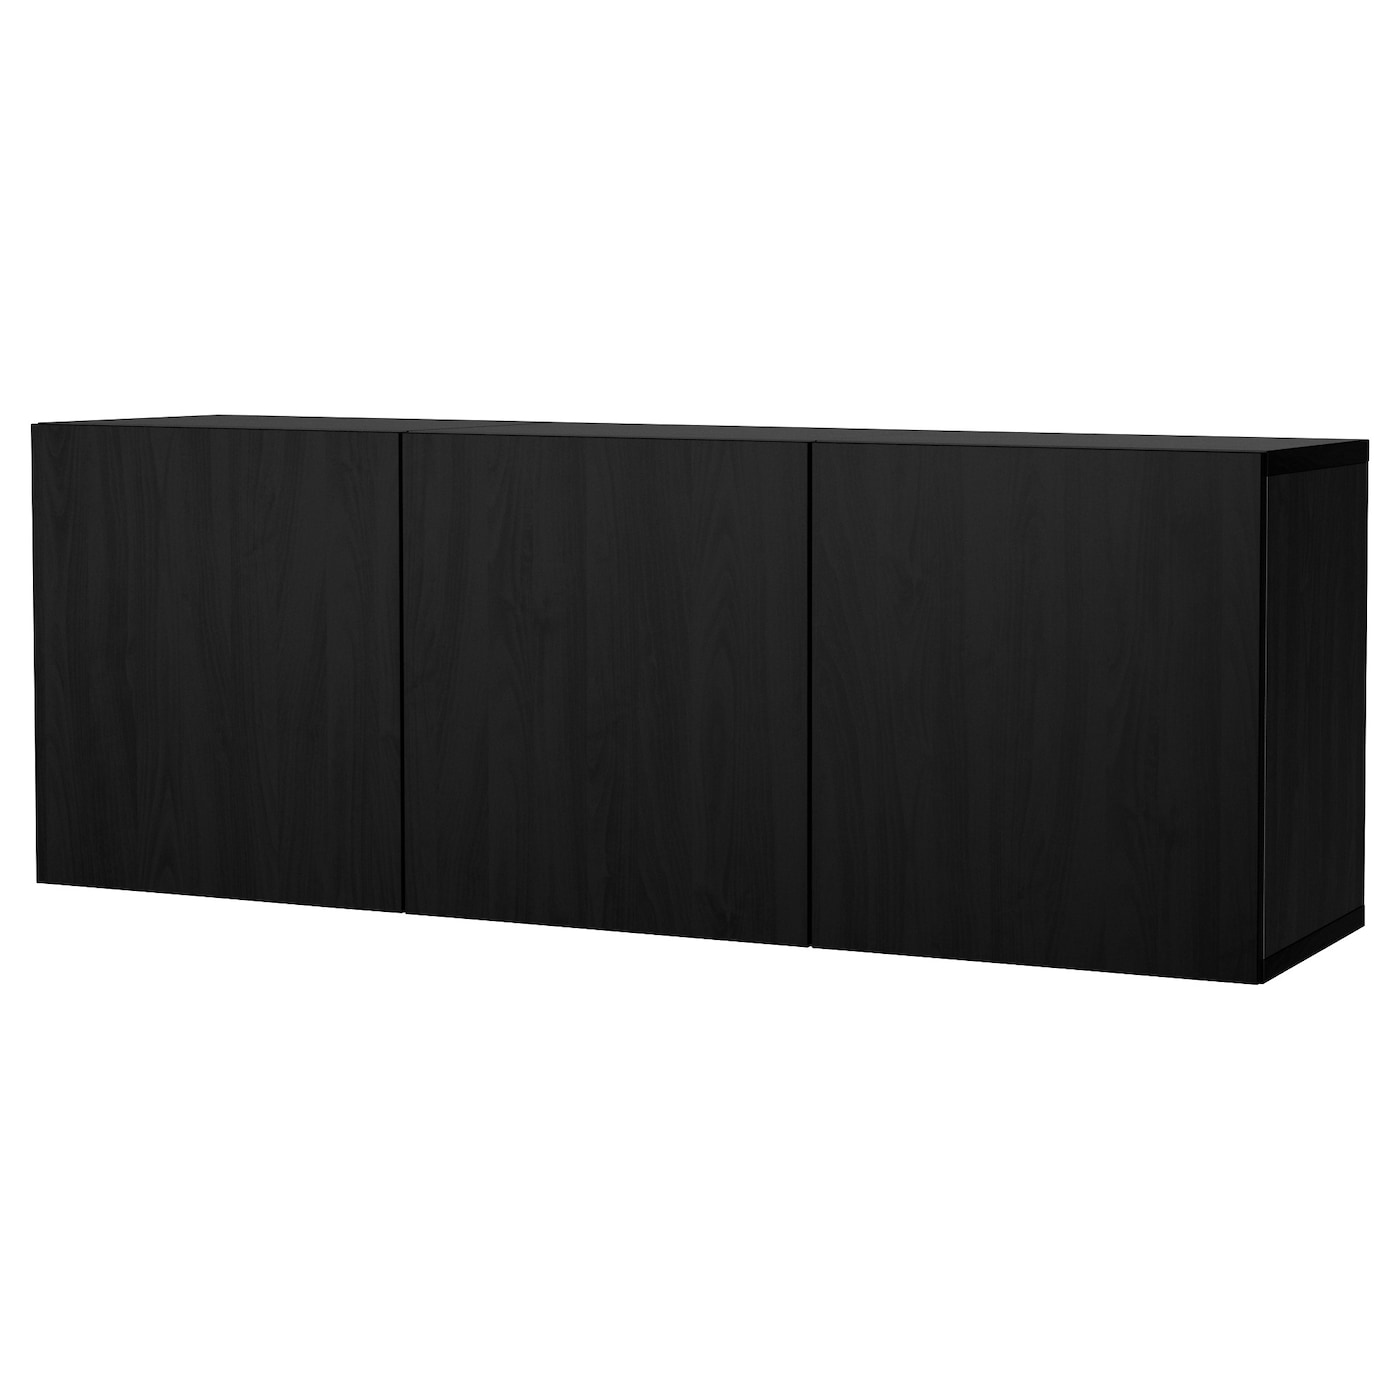 best combinaison rangement murale brun noir lappviken brun noir 180 x 40 x 64 cm ikea. Black Bedroom Furniture Sets. Home Design Ideas